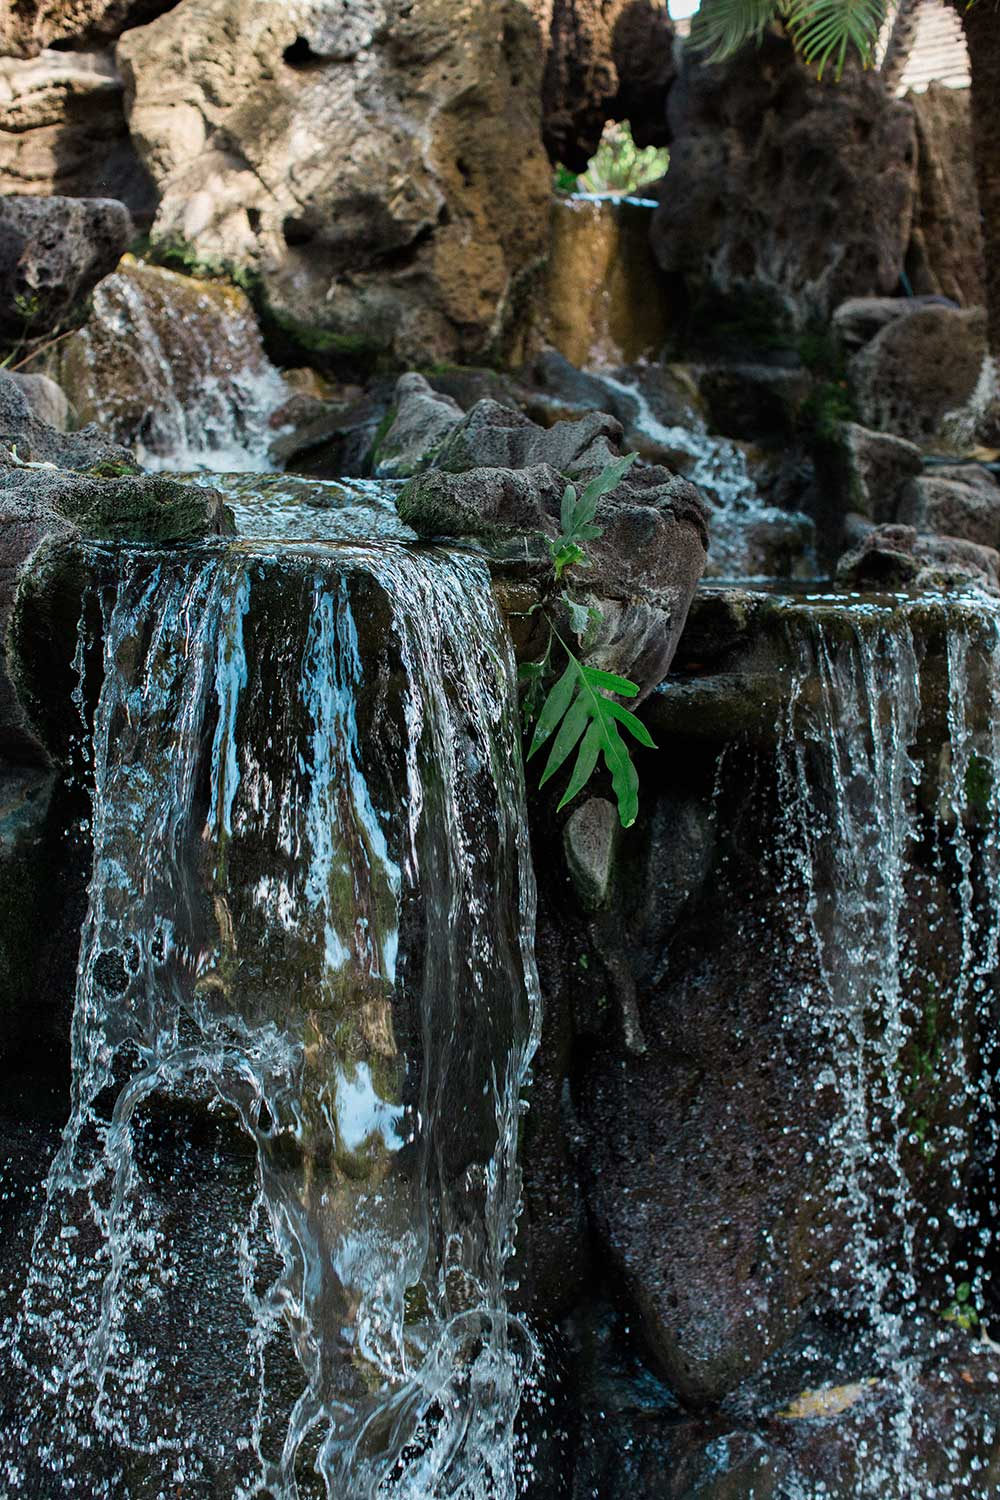 water flowing over rocks at the Willows Restaurant